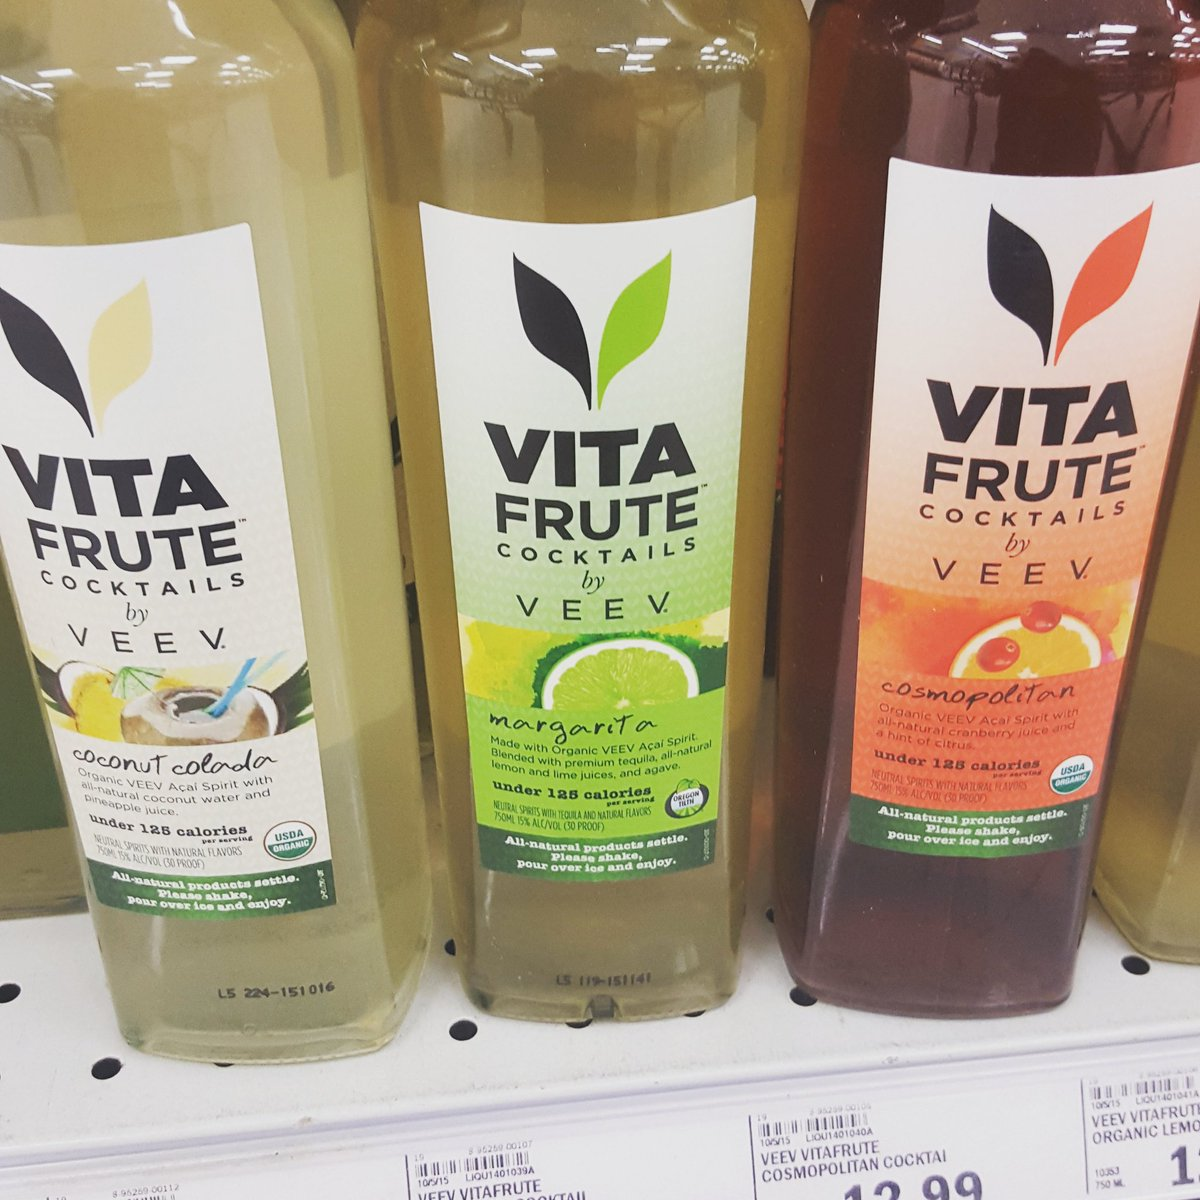 Every health nut's wet dream. They can drink again and count calories! @VEEV #organicalcohol  #healthfoods https://t.co/dIzlj1VY2Z